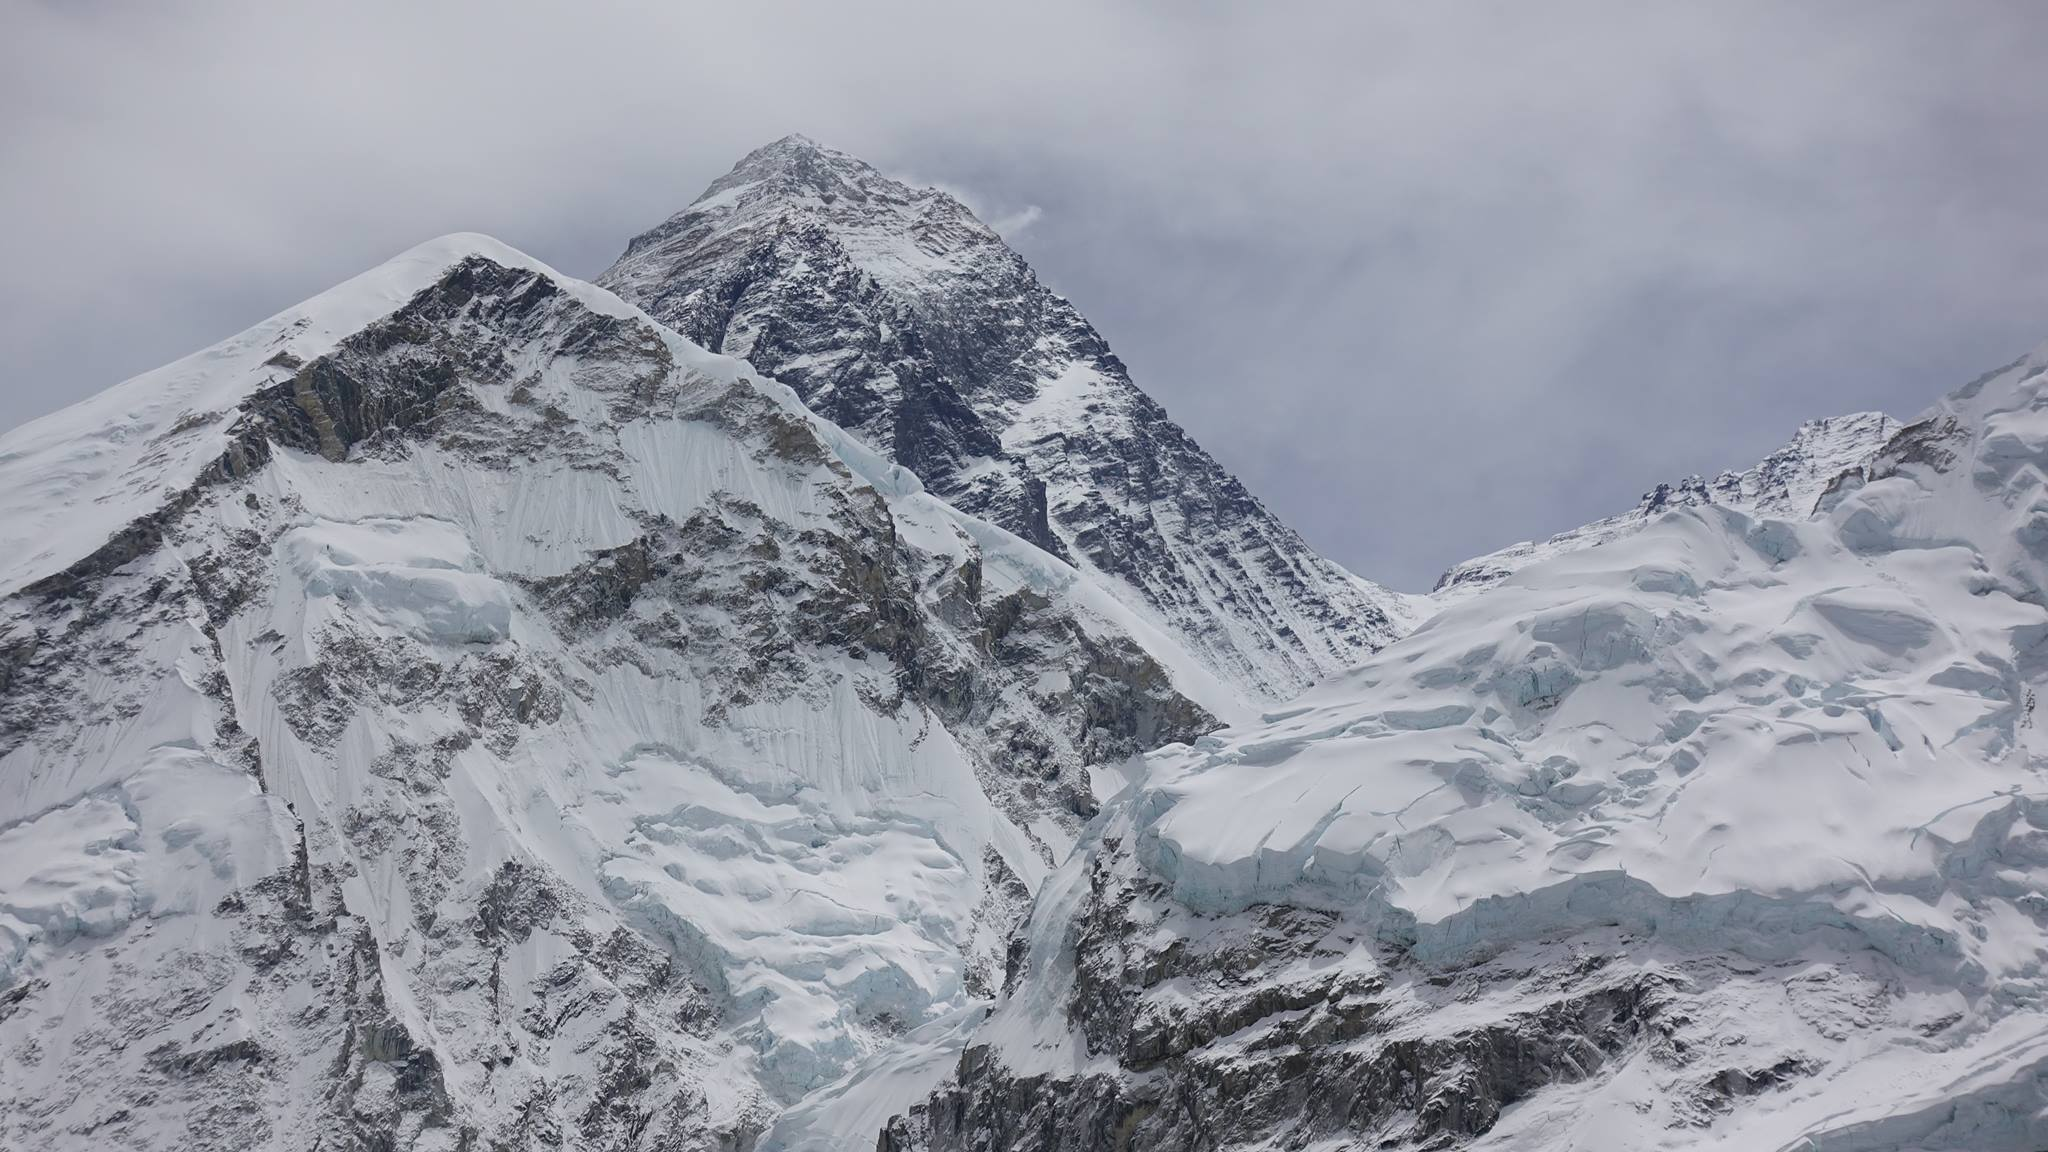 Everest-2107-from-Pumori-by-Jim-Davidson